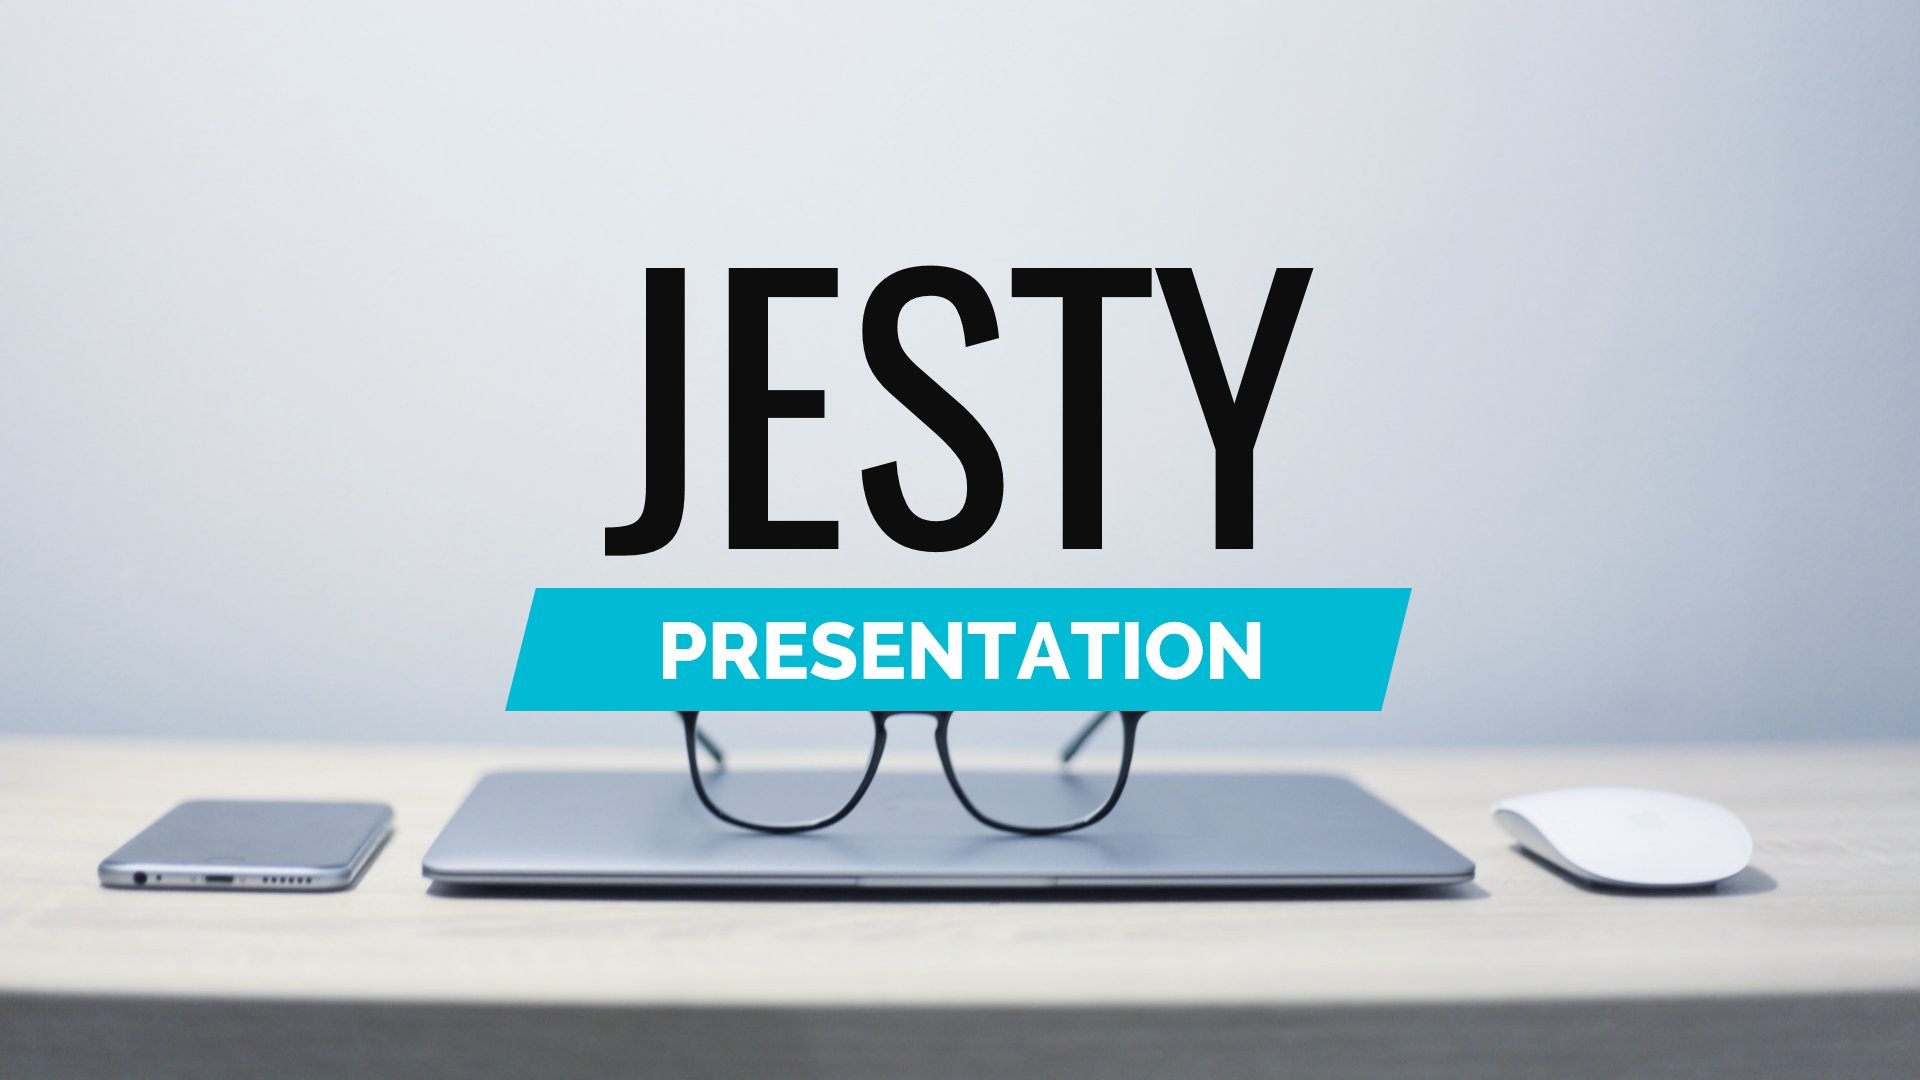 Jetsy PowerPoint Template